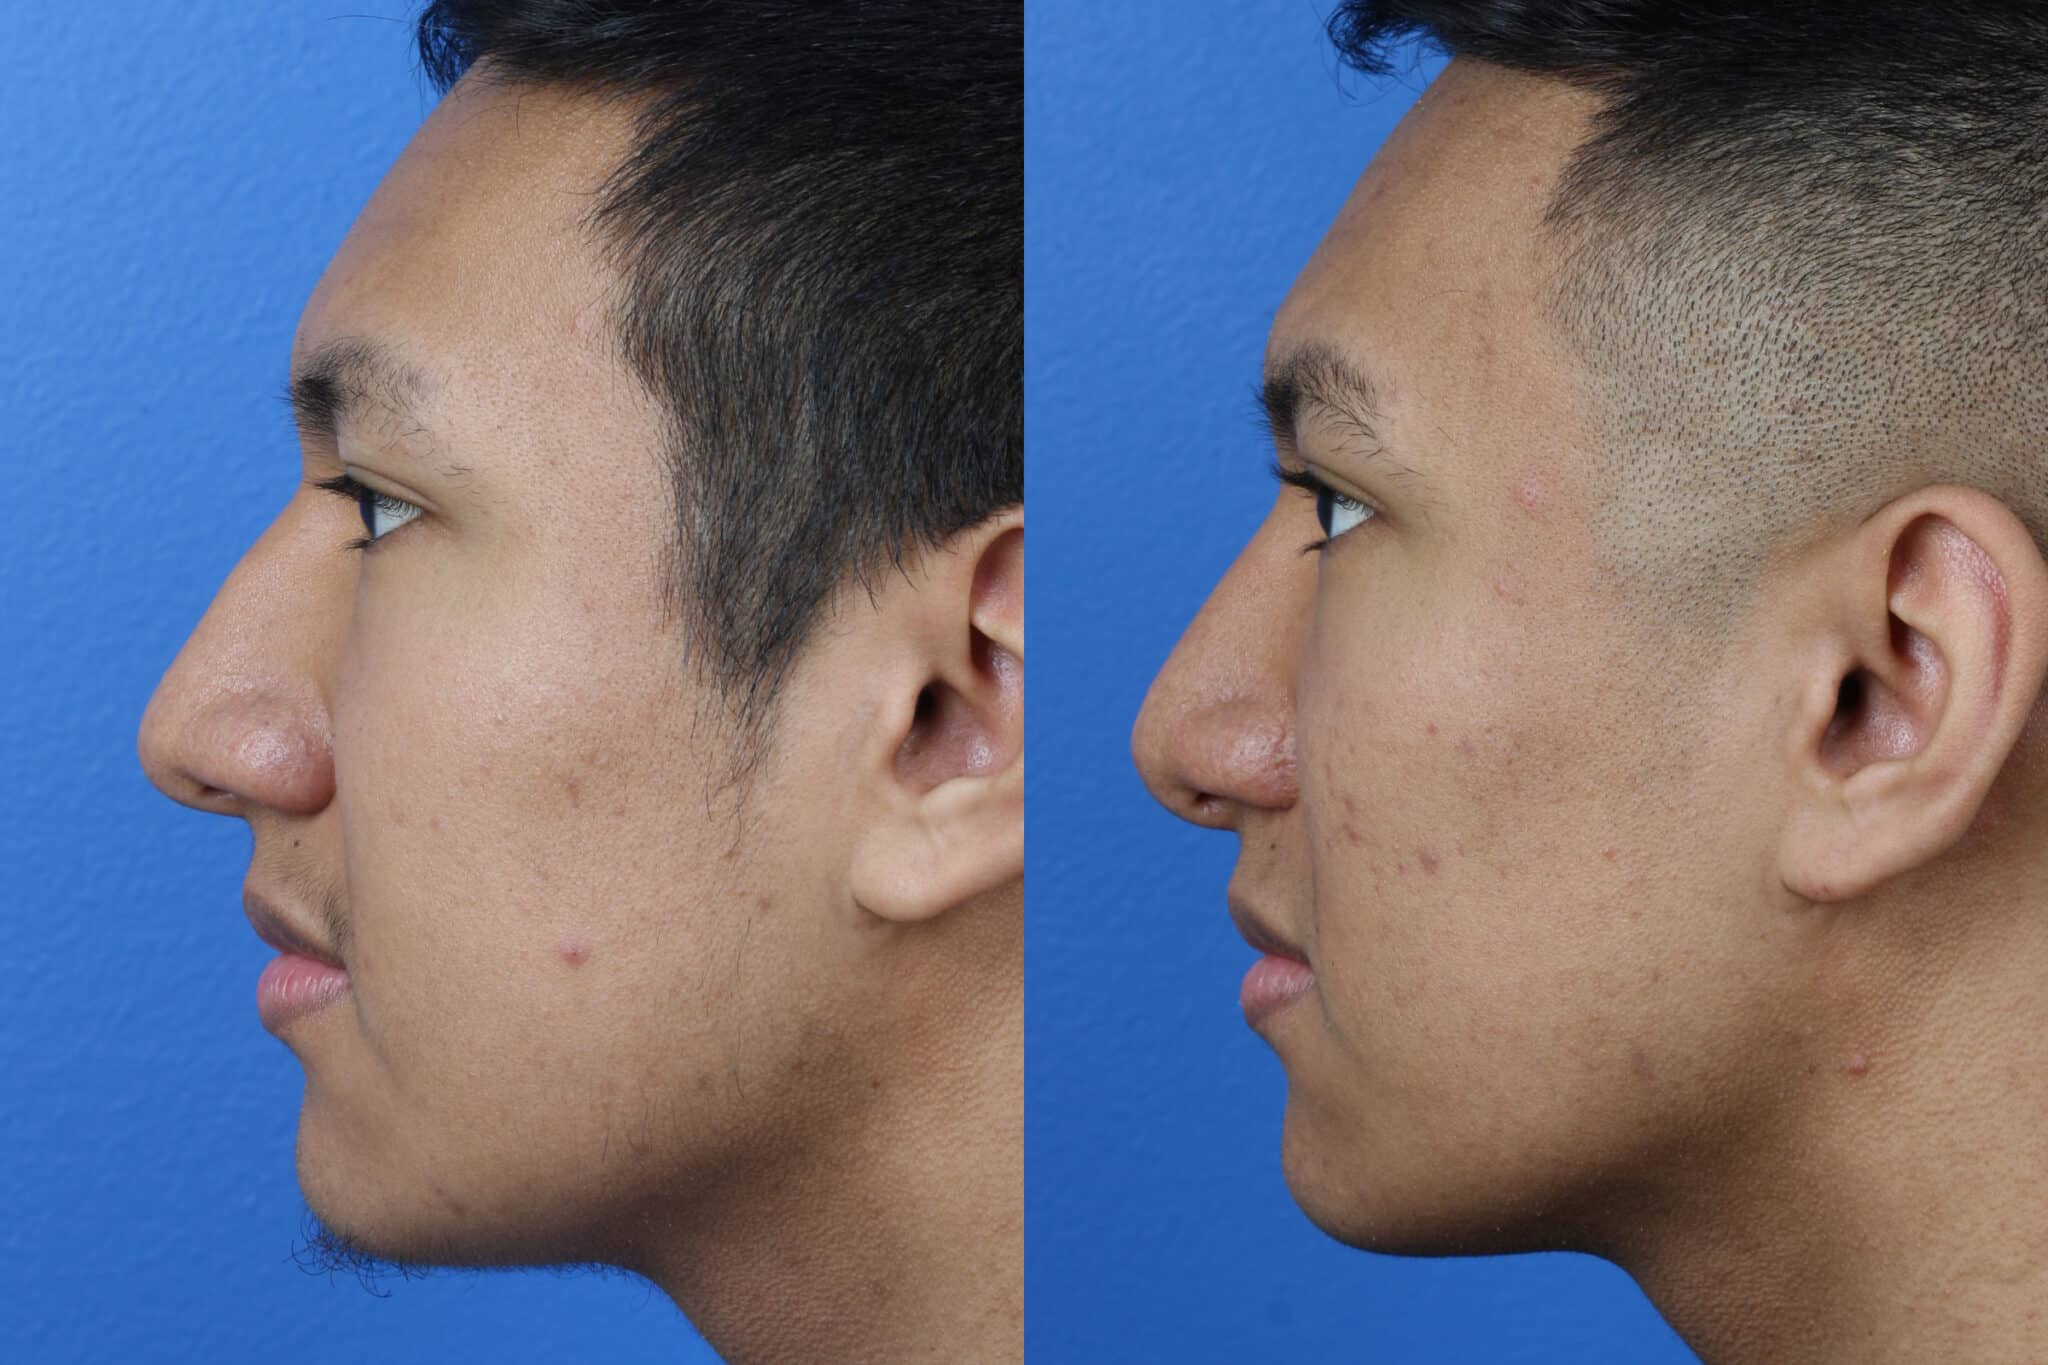 Rhinoplasty to Correct Nasal Bridge and Enhance Facial Profile by Dr. Miller